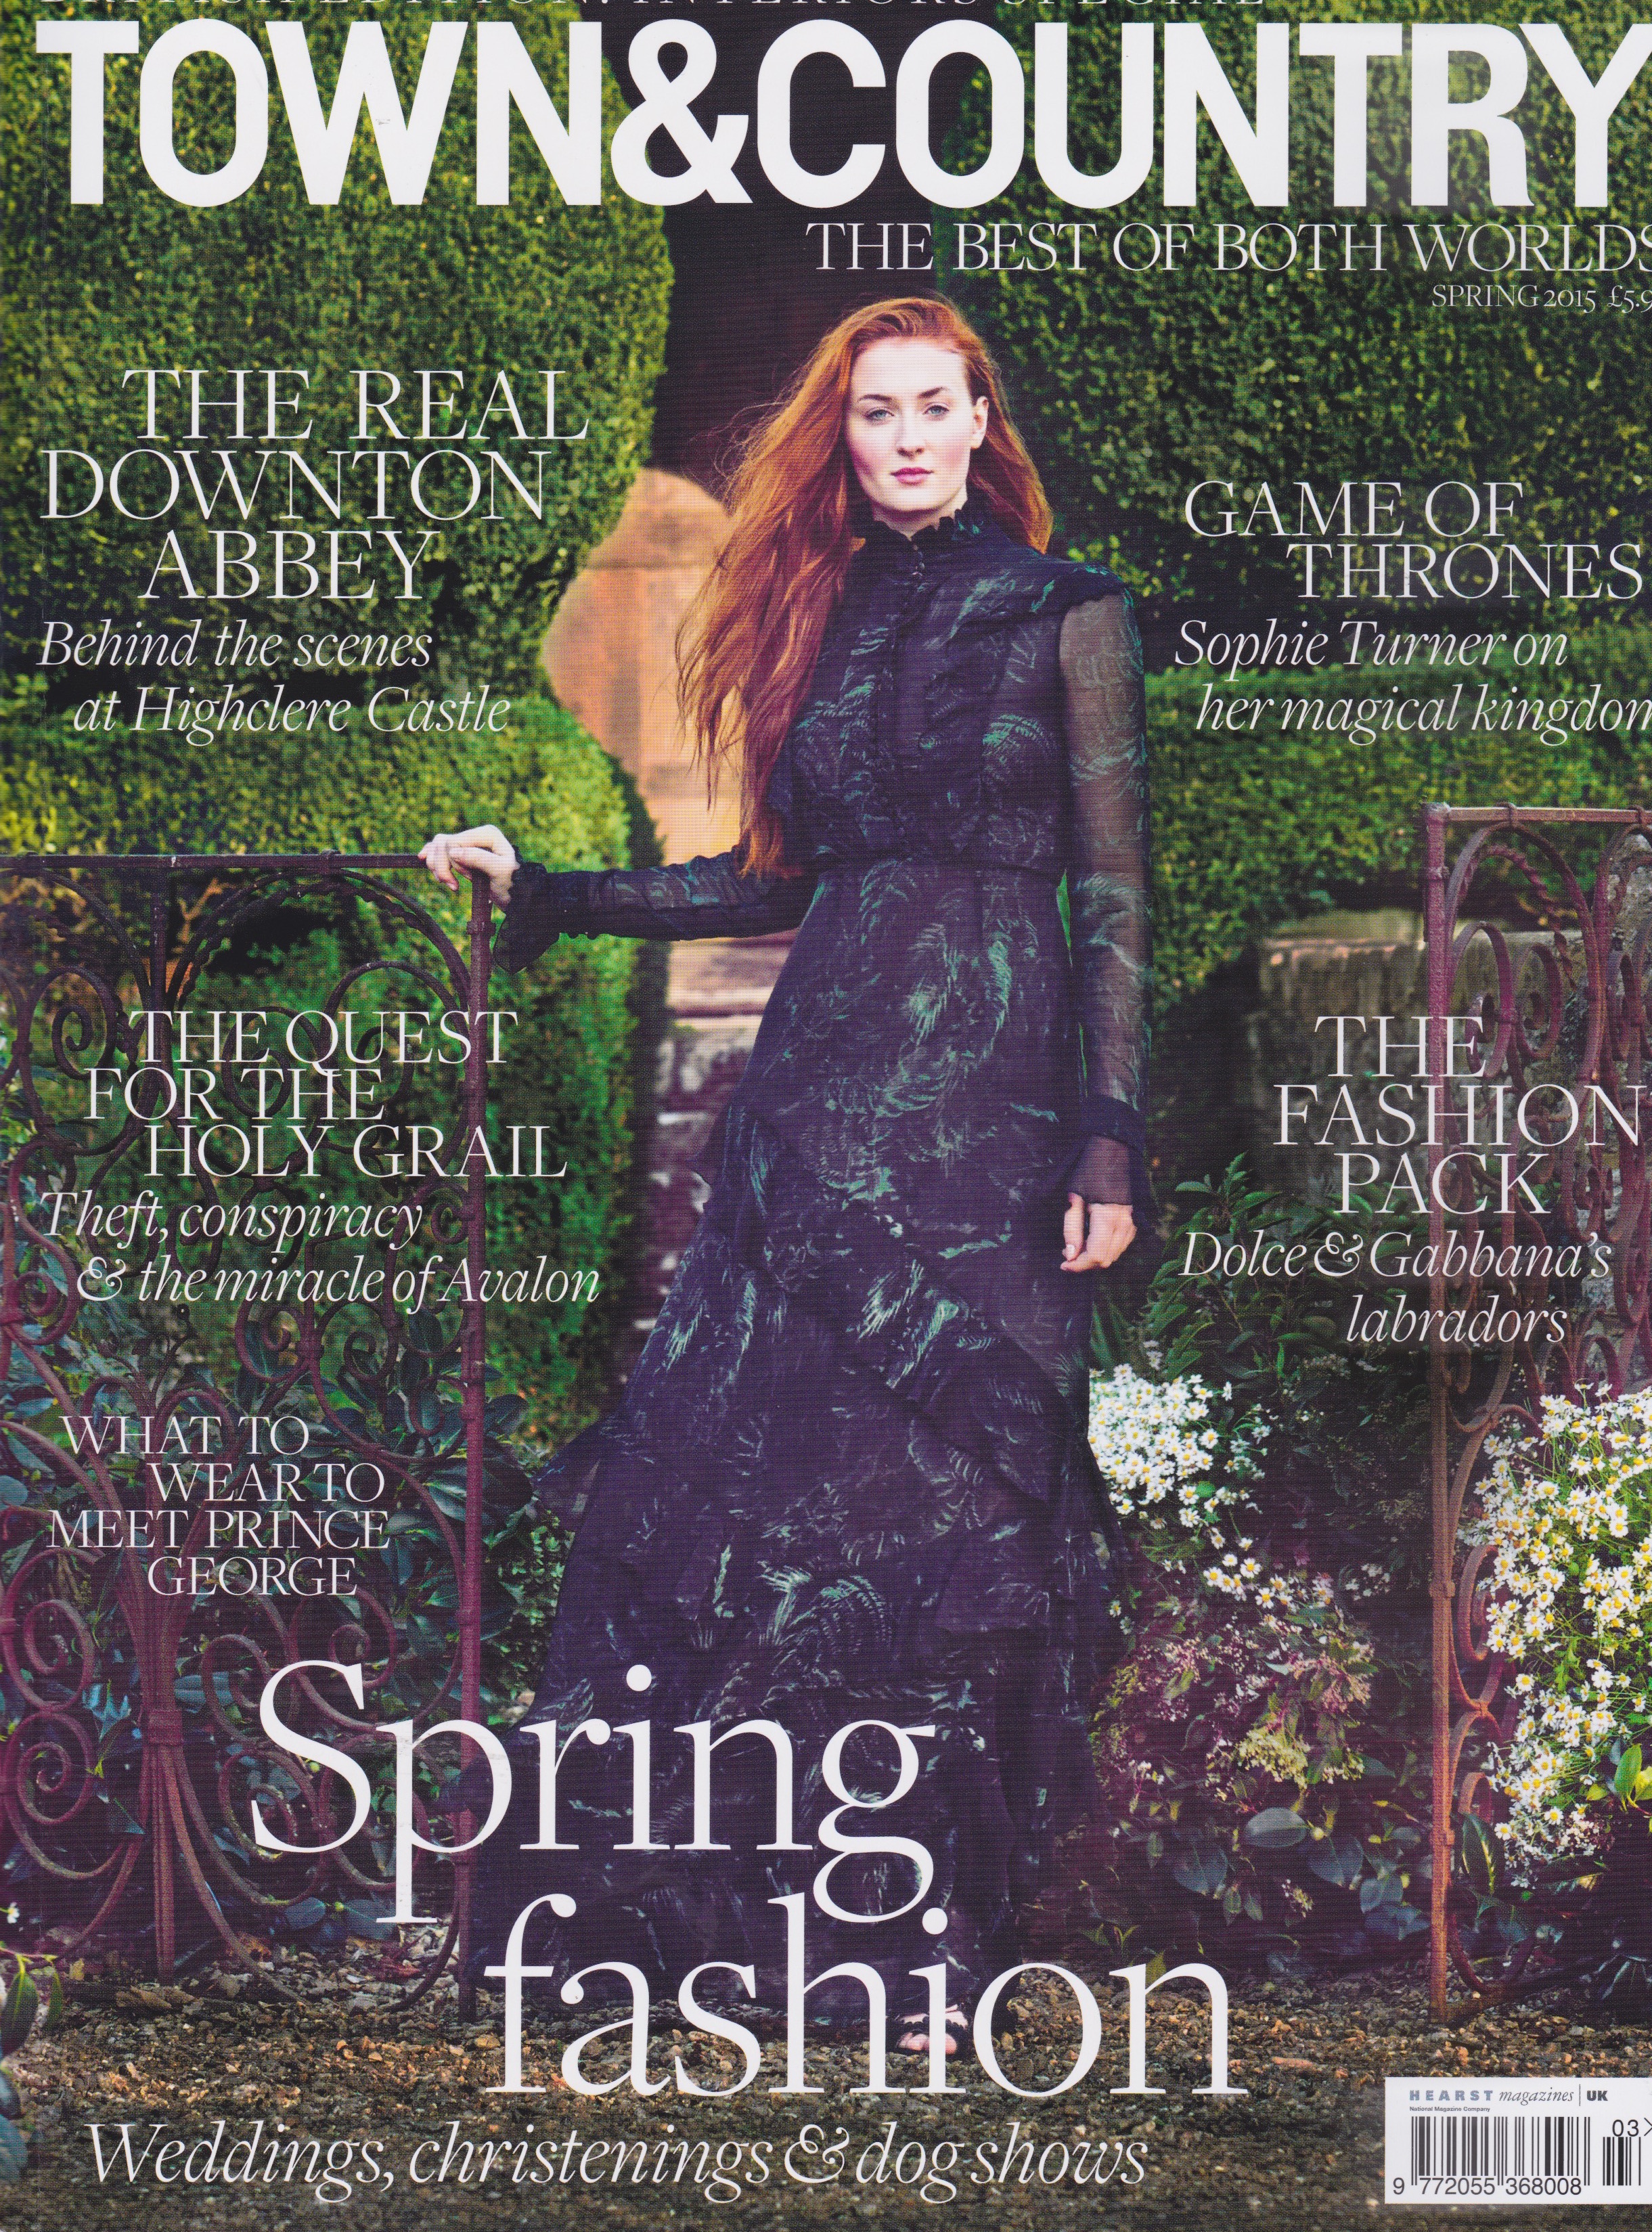 Town & Country magazine - Spring Issue 2015.jpg